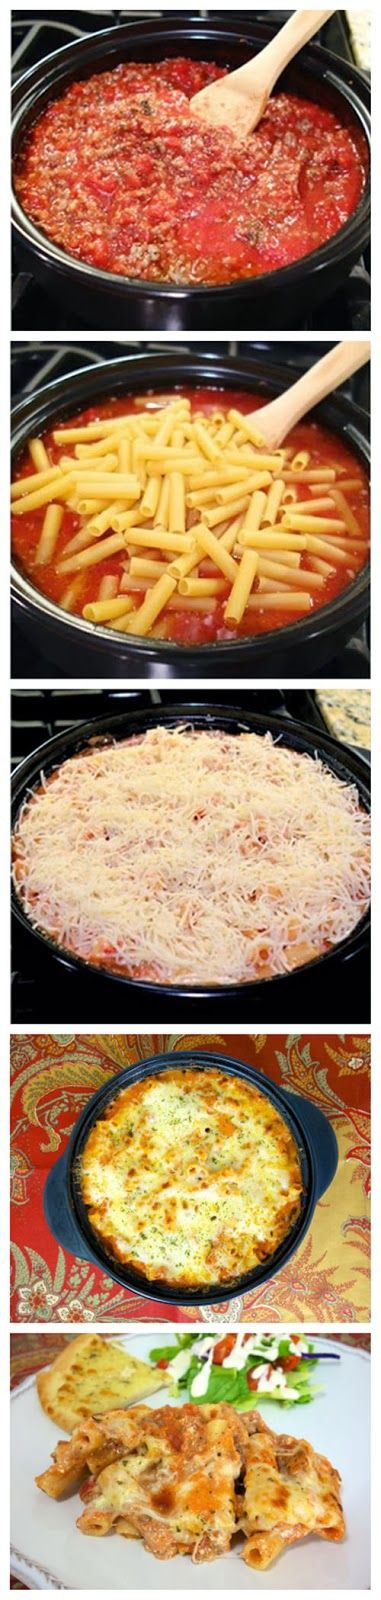 One-Pot Baked Ziti-use more ricotta cheese and tomatoes next time